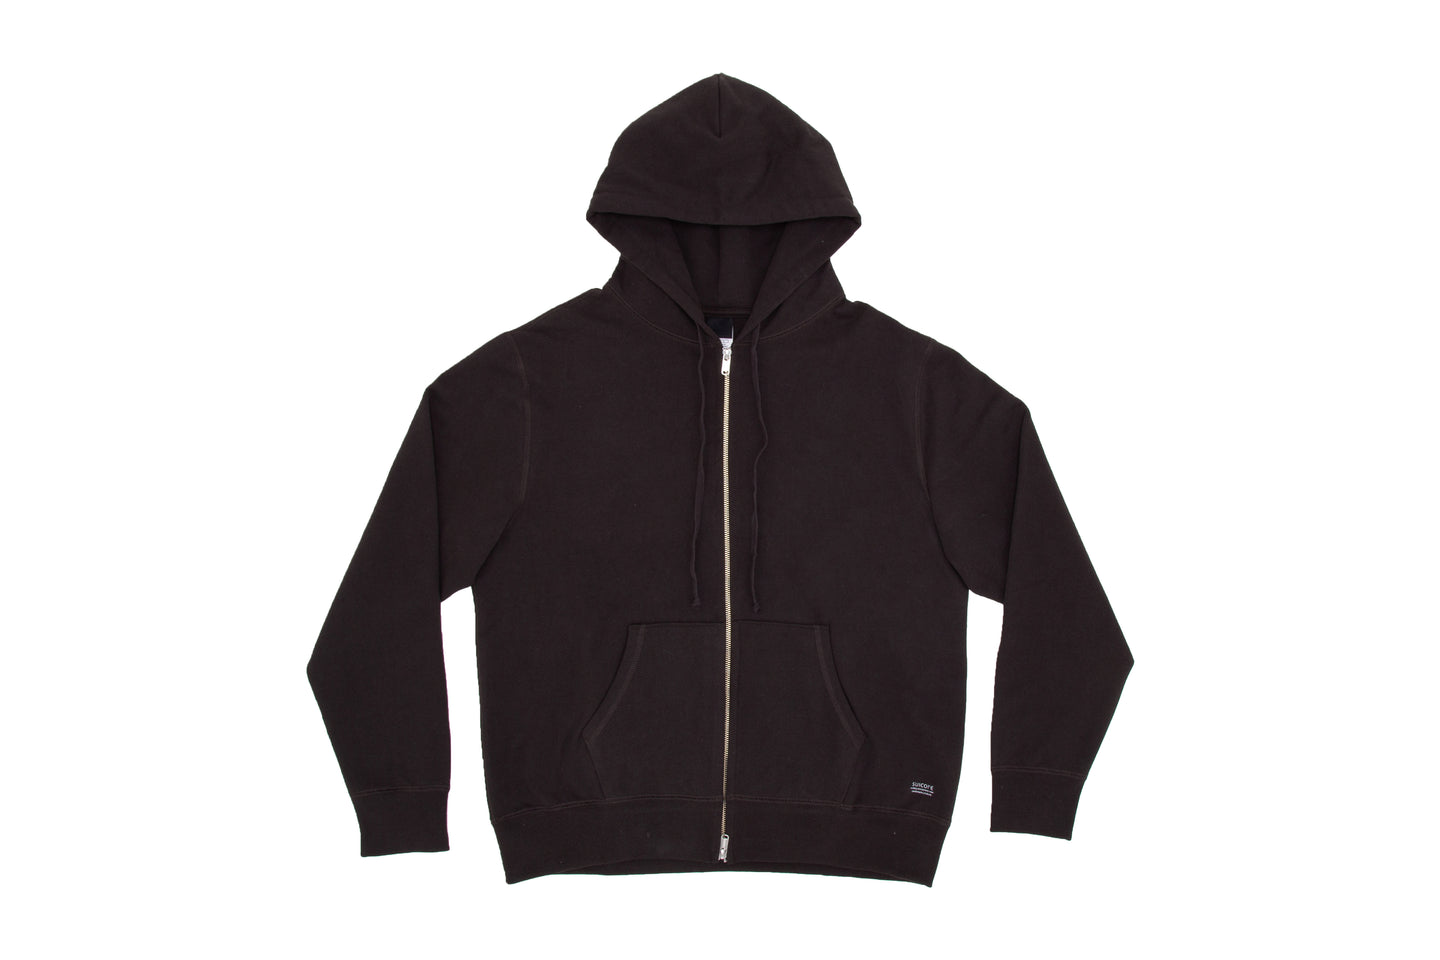 SUICOKE-CLOTHING-ZIP HOODIE E - Ink Black-O2 Official Webstore Spring2021